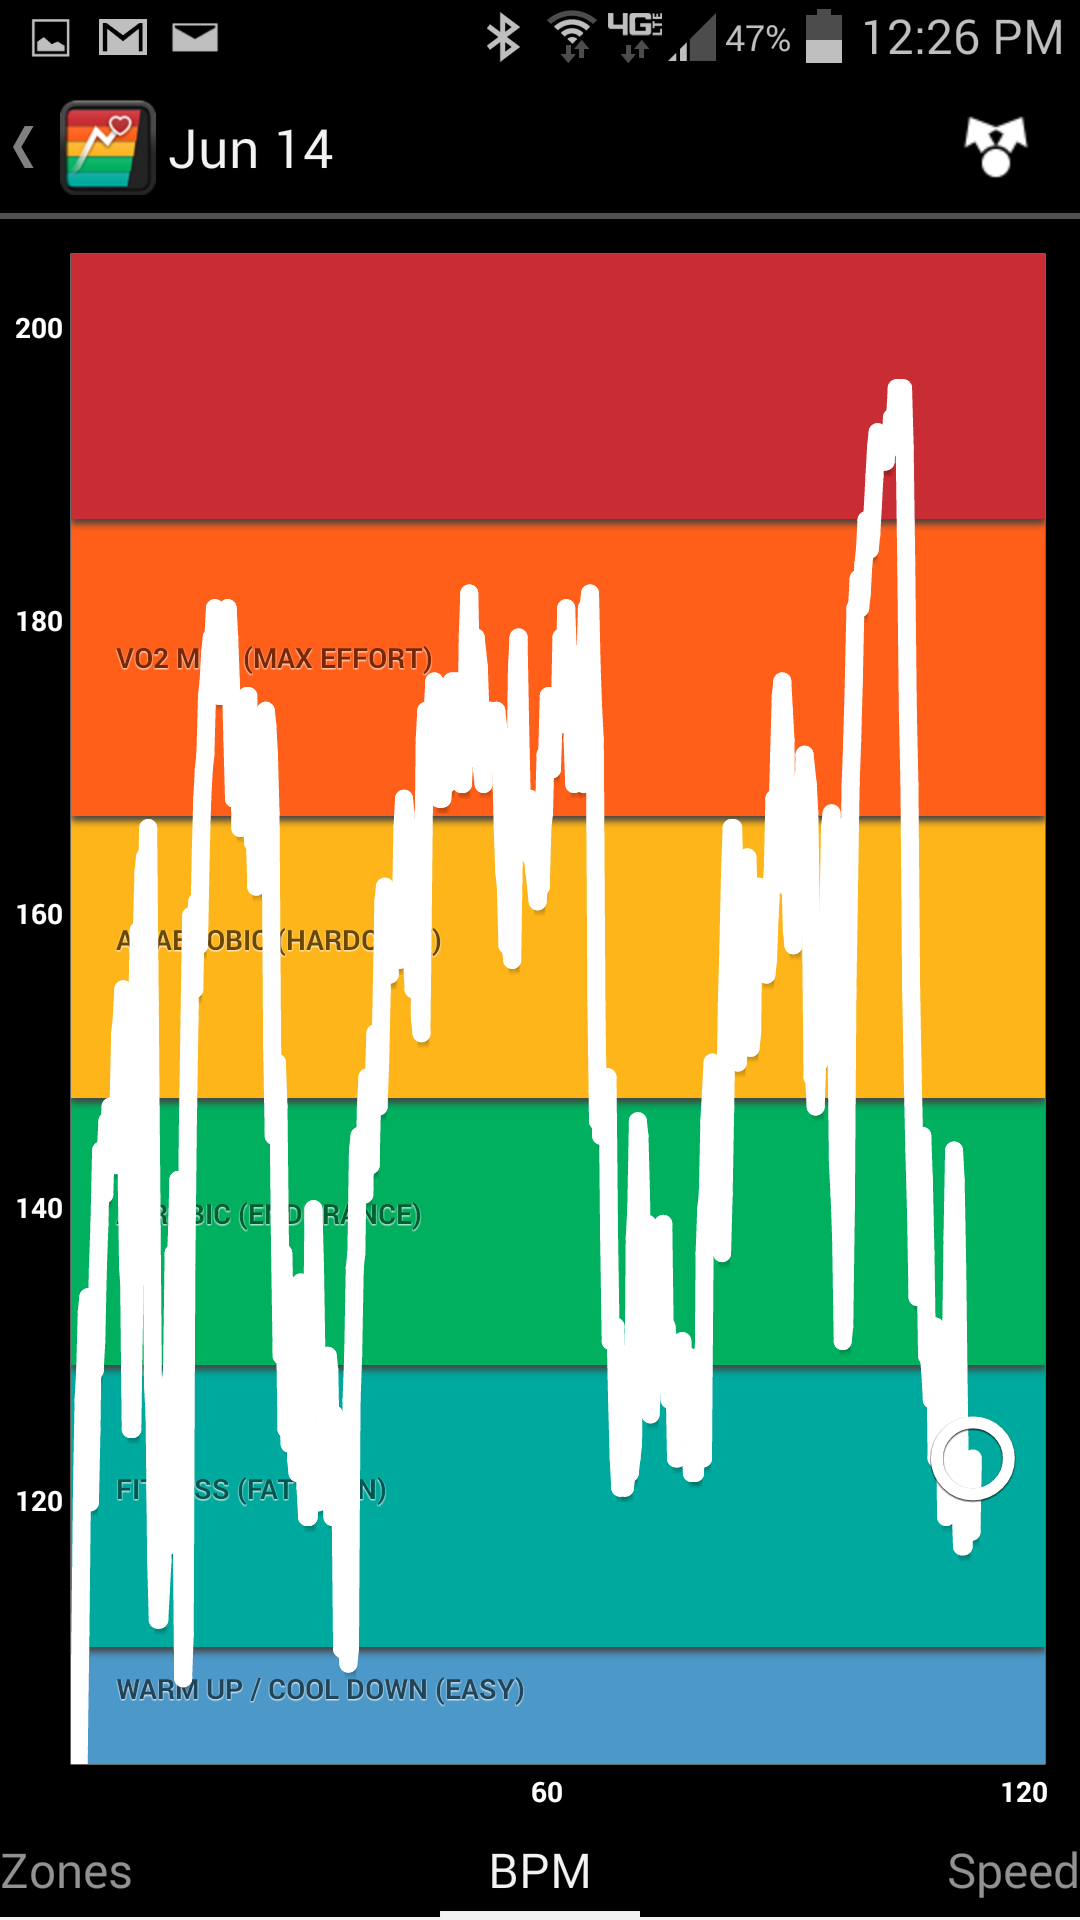 I have been using the Digifit iCardio App for Android to track my heart rate on my mountain bike rides. The last peak I was shooting for a personal record up the last blacktop in Sycamore Canyon.